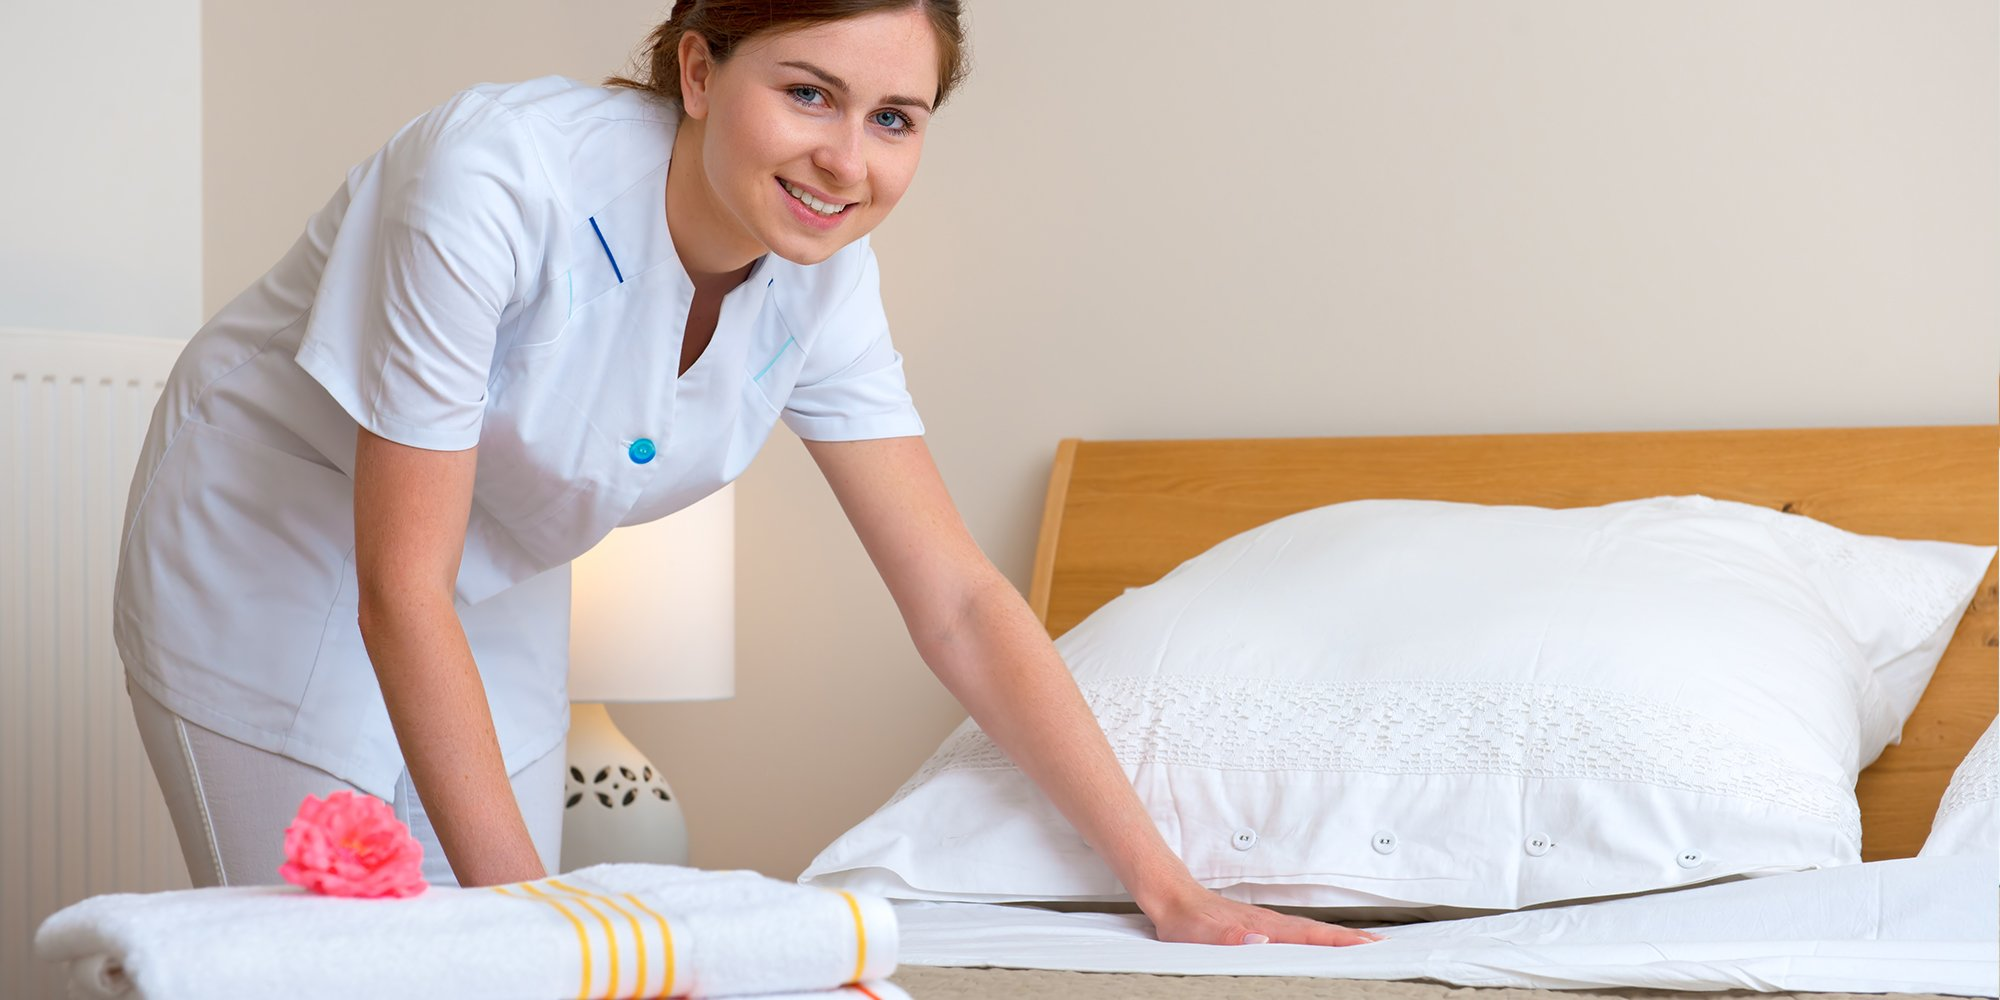 House keeping professional organizing the bed